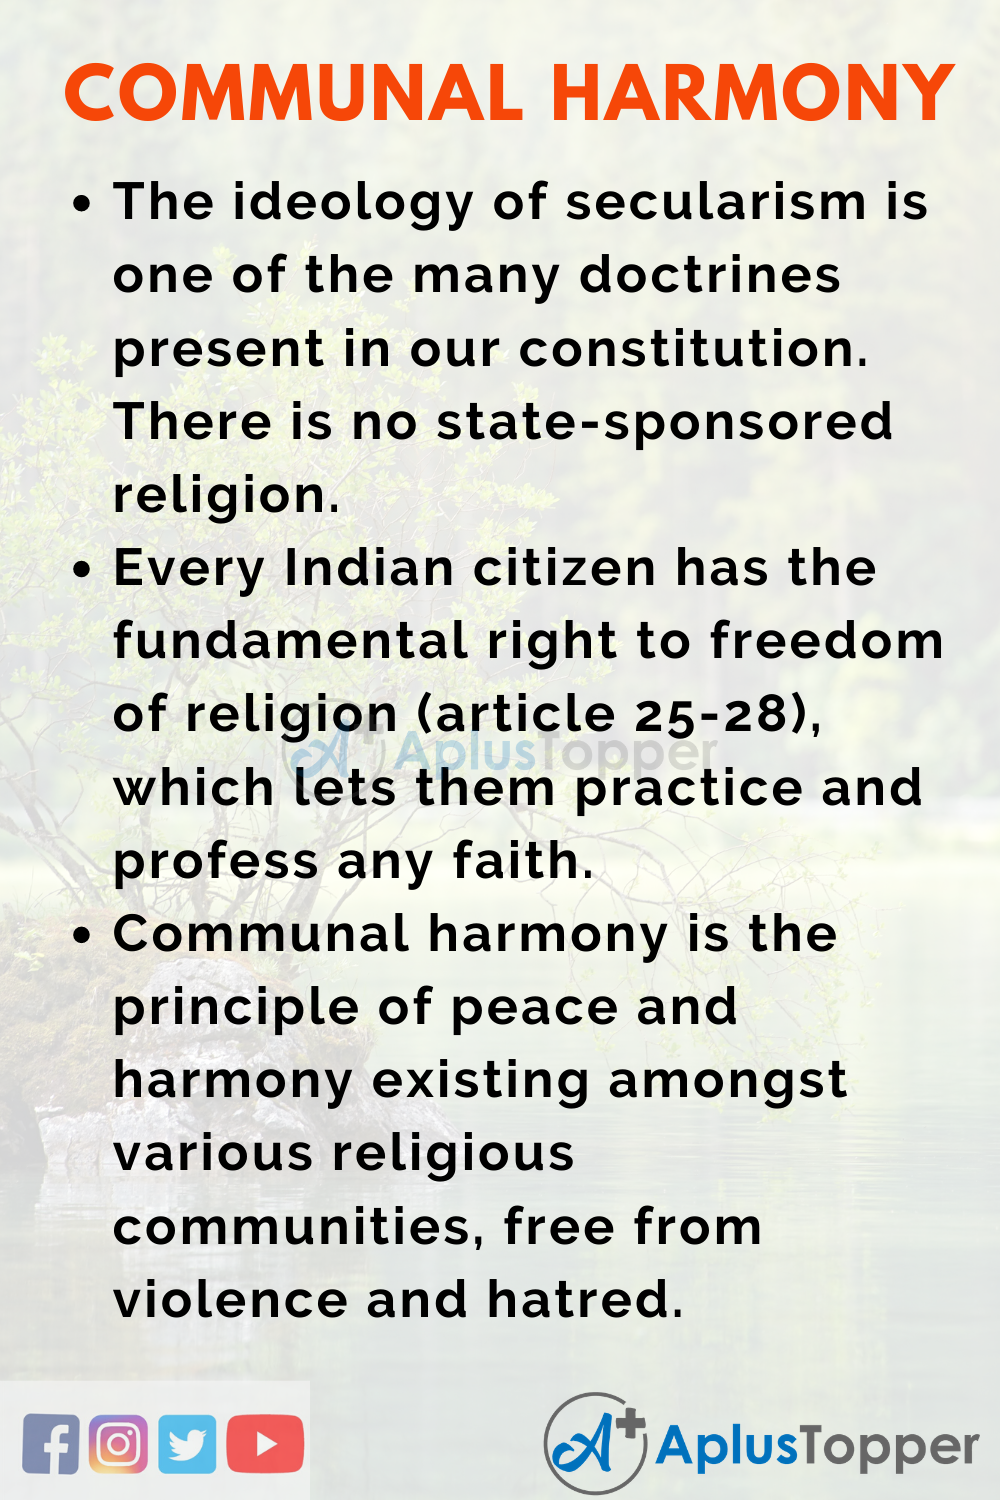 essay on role of education in communal harmony